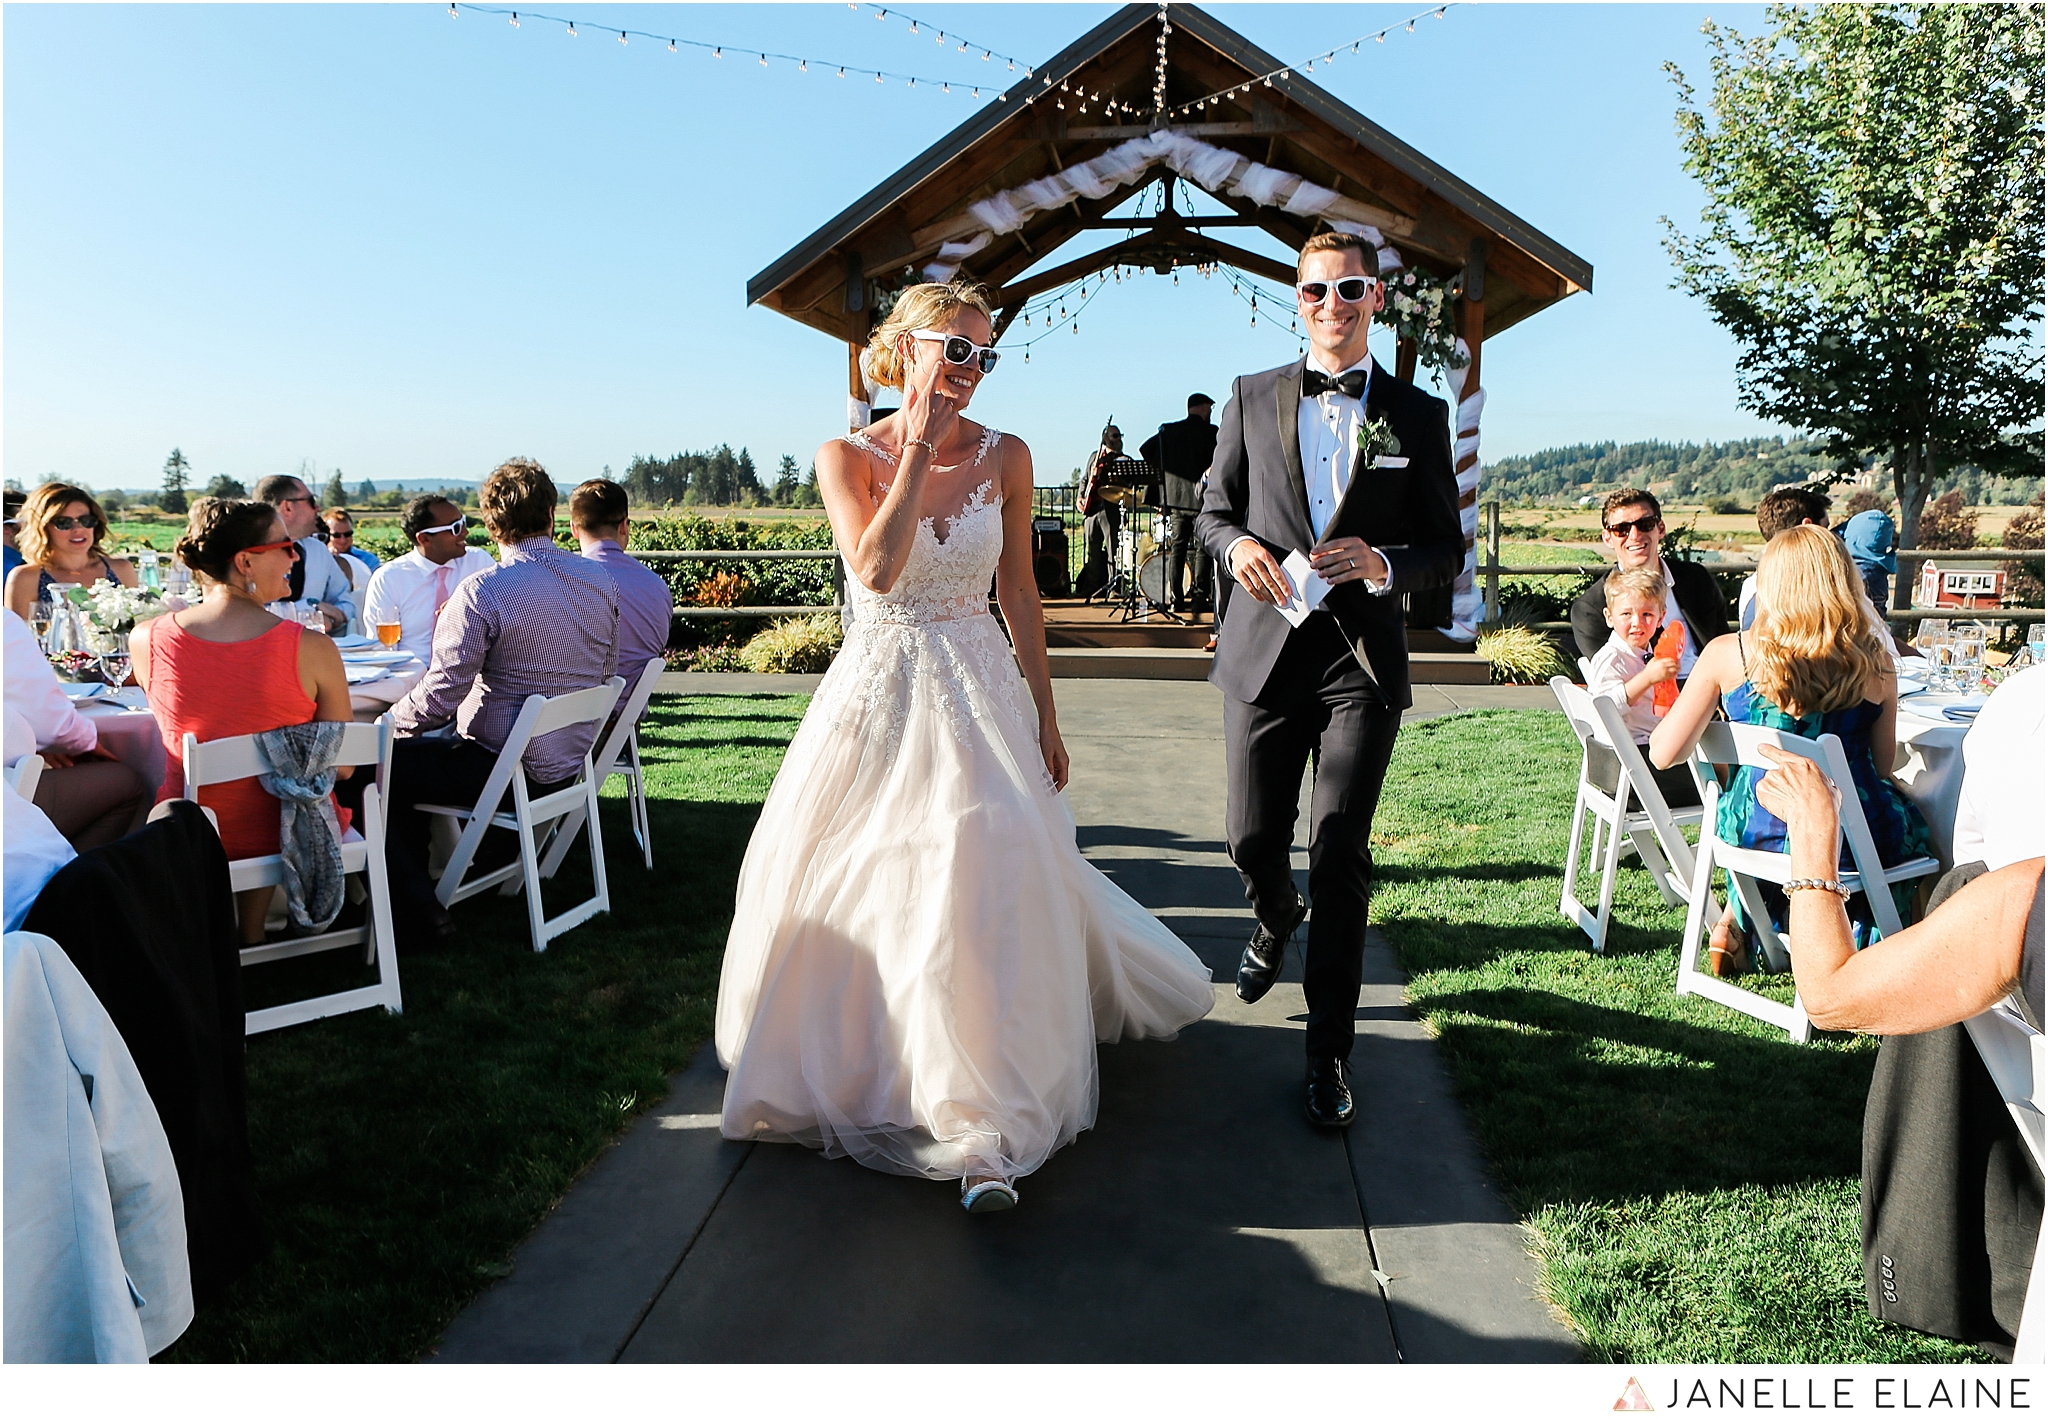 janelle elaine photography-carleton farms-washington-wedding-lake stevens-272.jpg